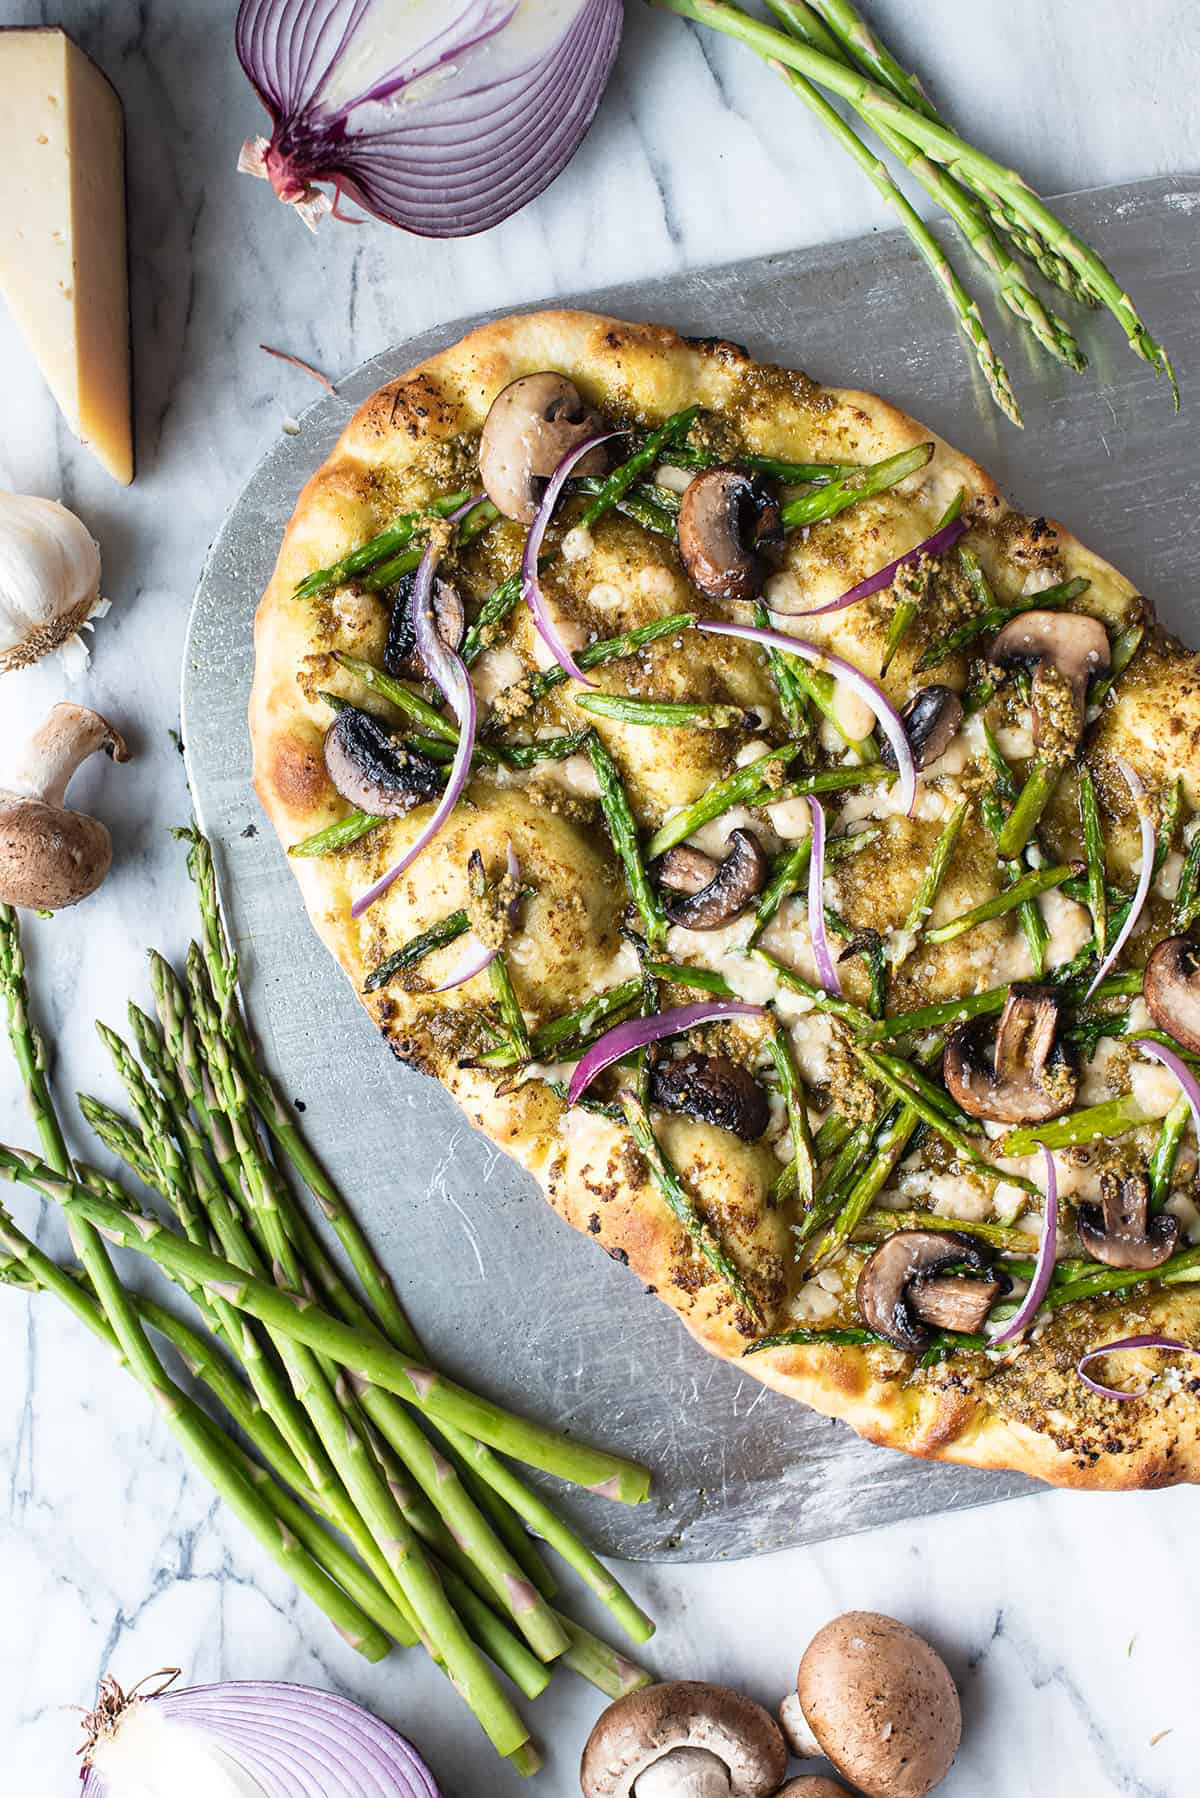 whole pizza on metal slab with asparagus spears